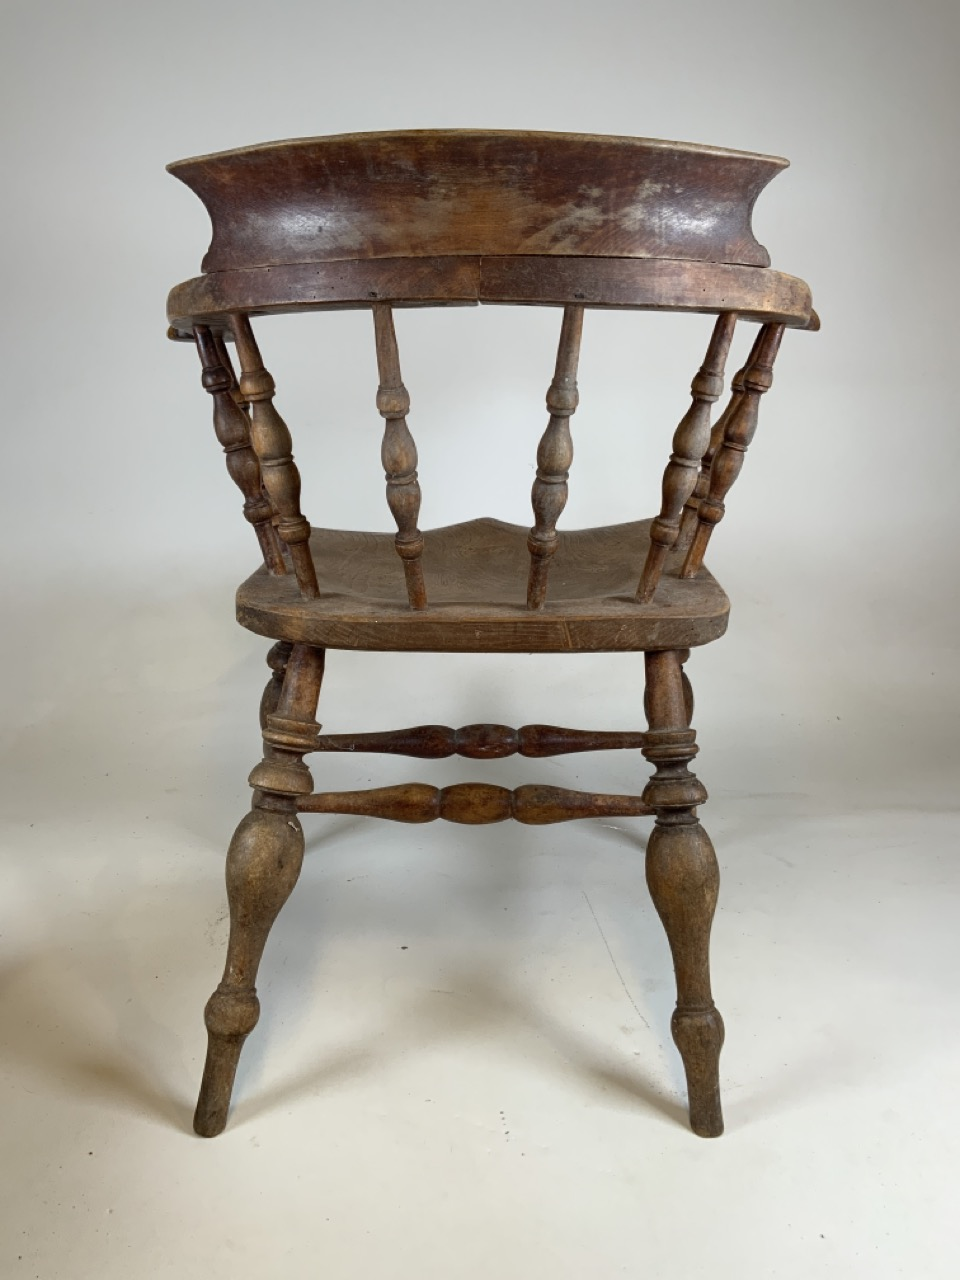 A Victorian smokers bow arm chair with curved top rail and turned spindles with saddle shaped seat - Image 8 of 10